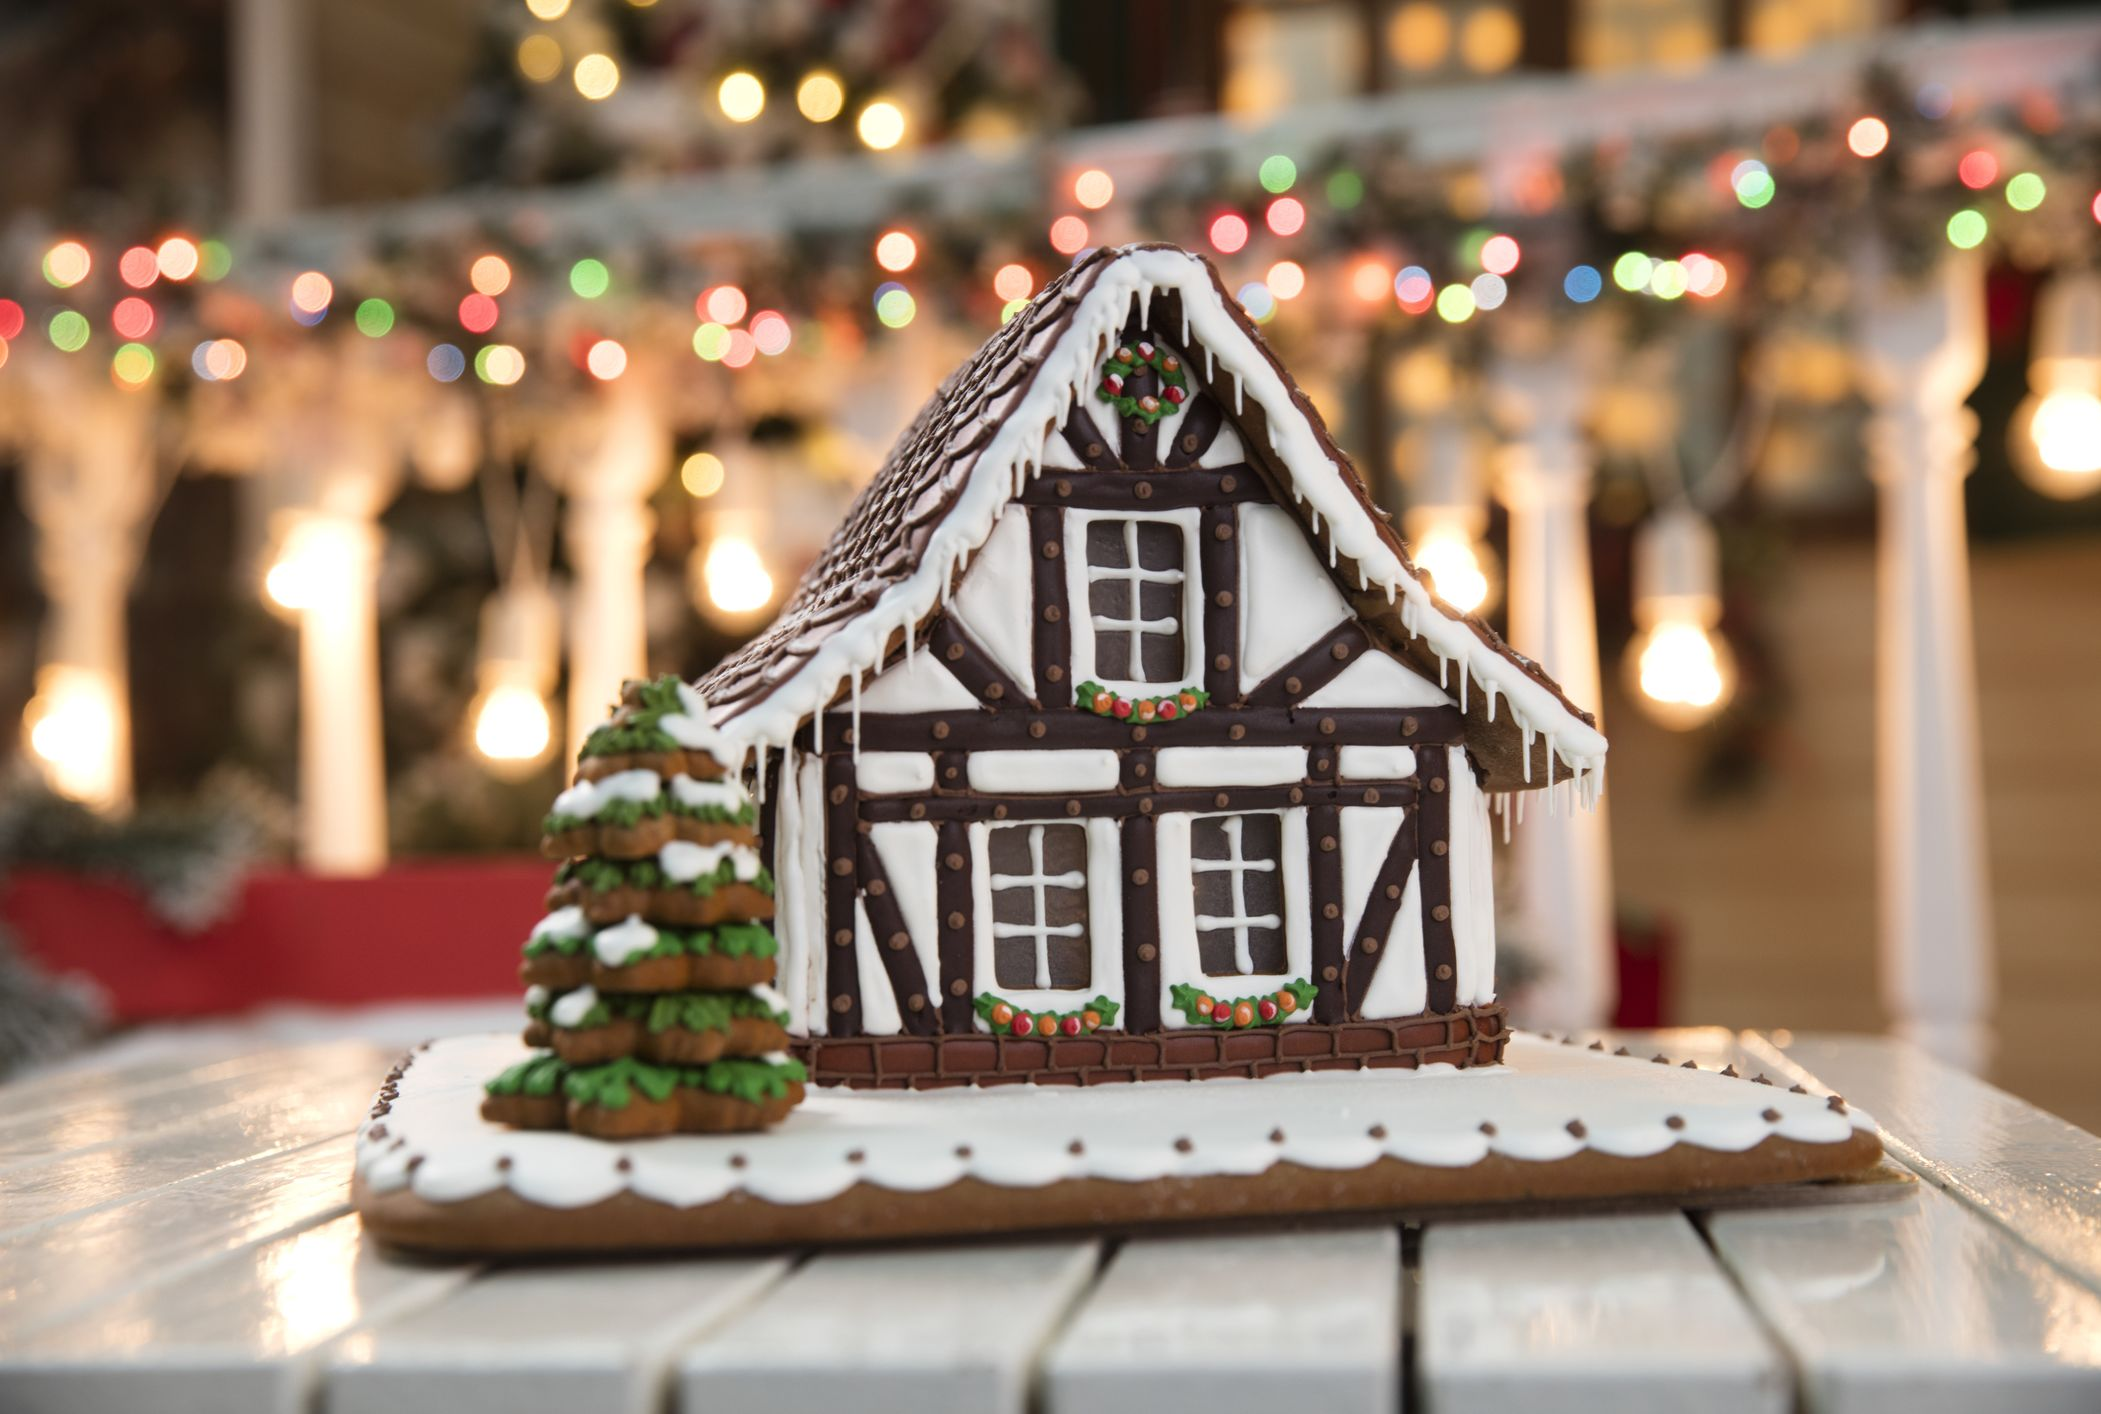 These Stunning Gingerbread Houses Were Built By Professional